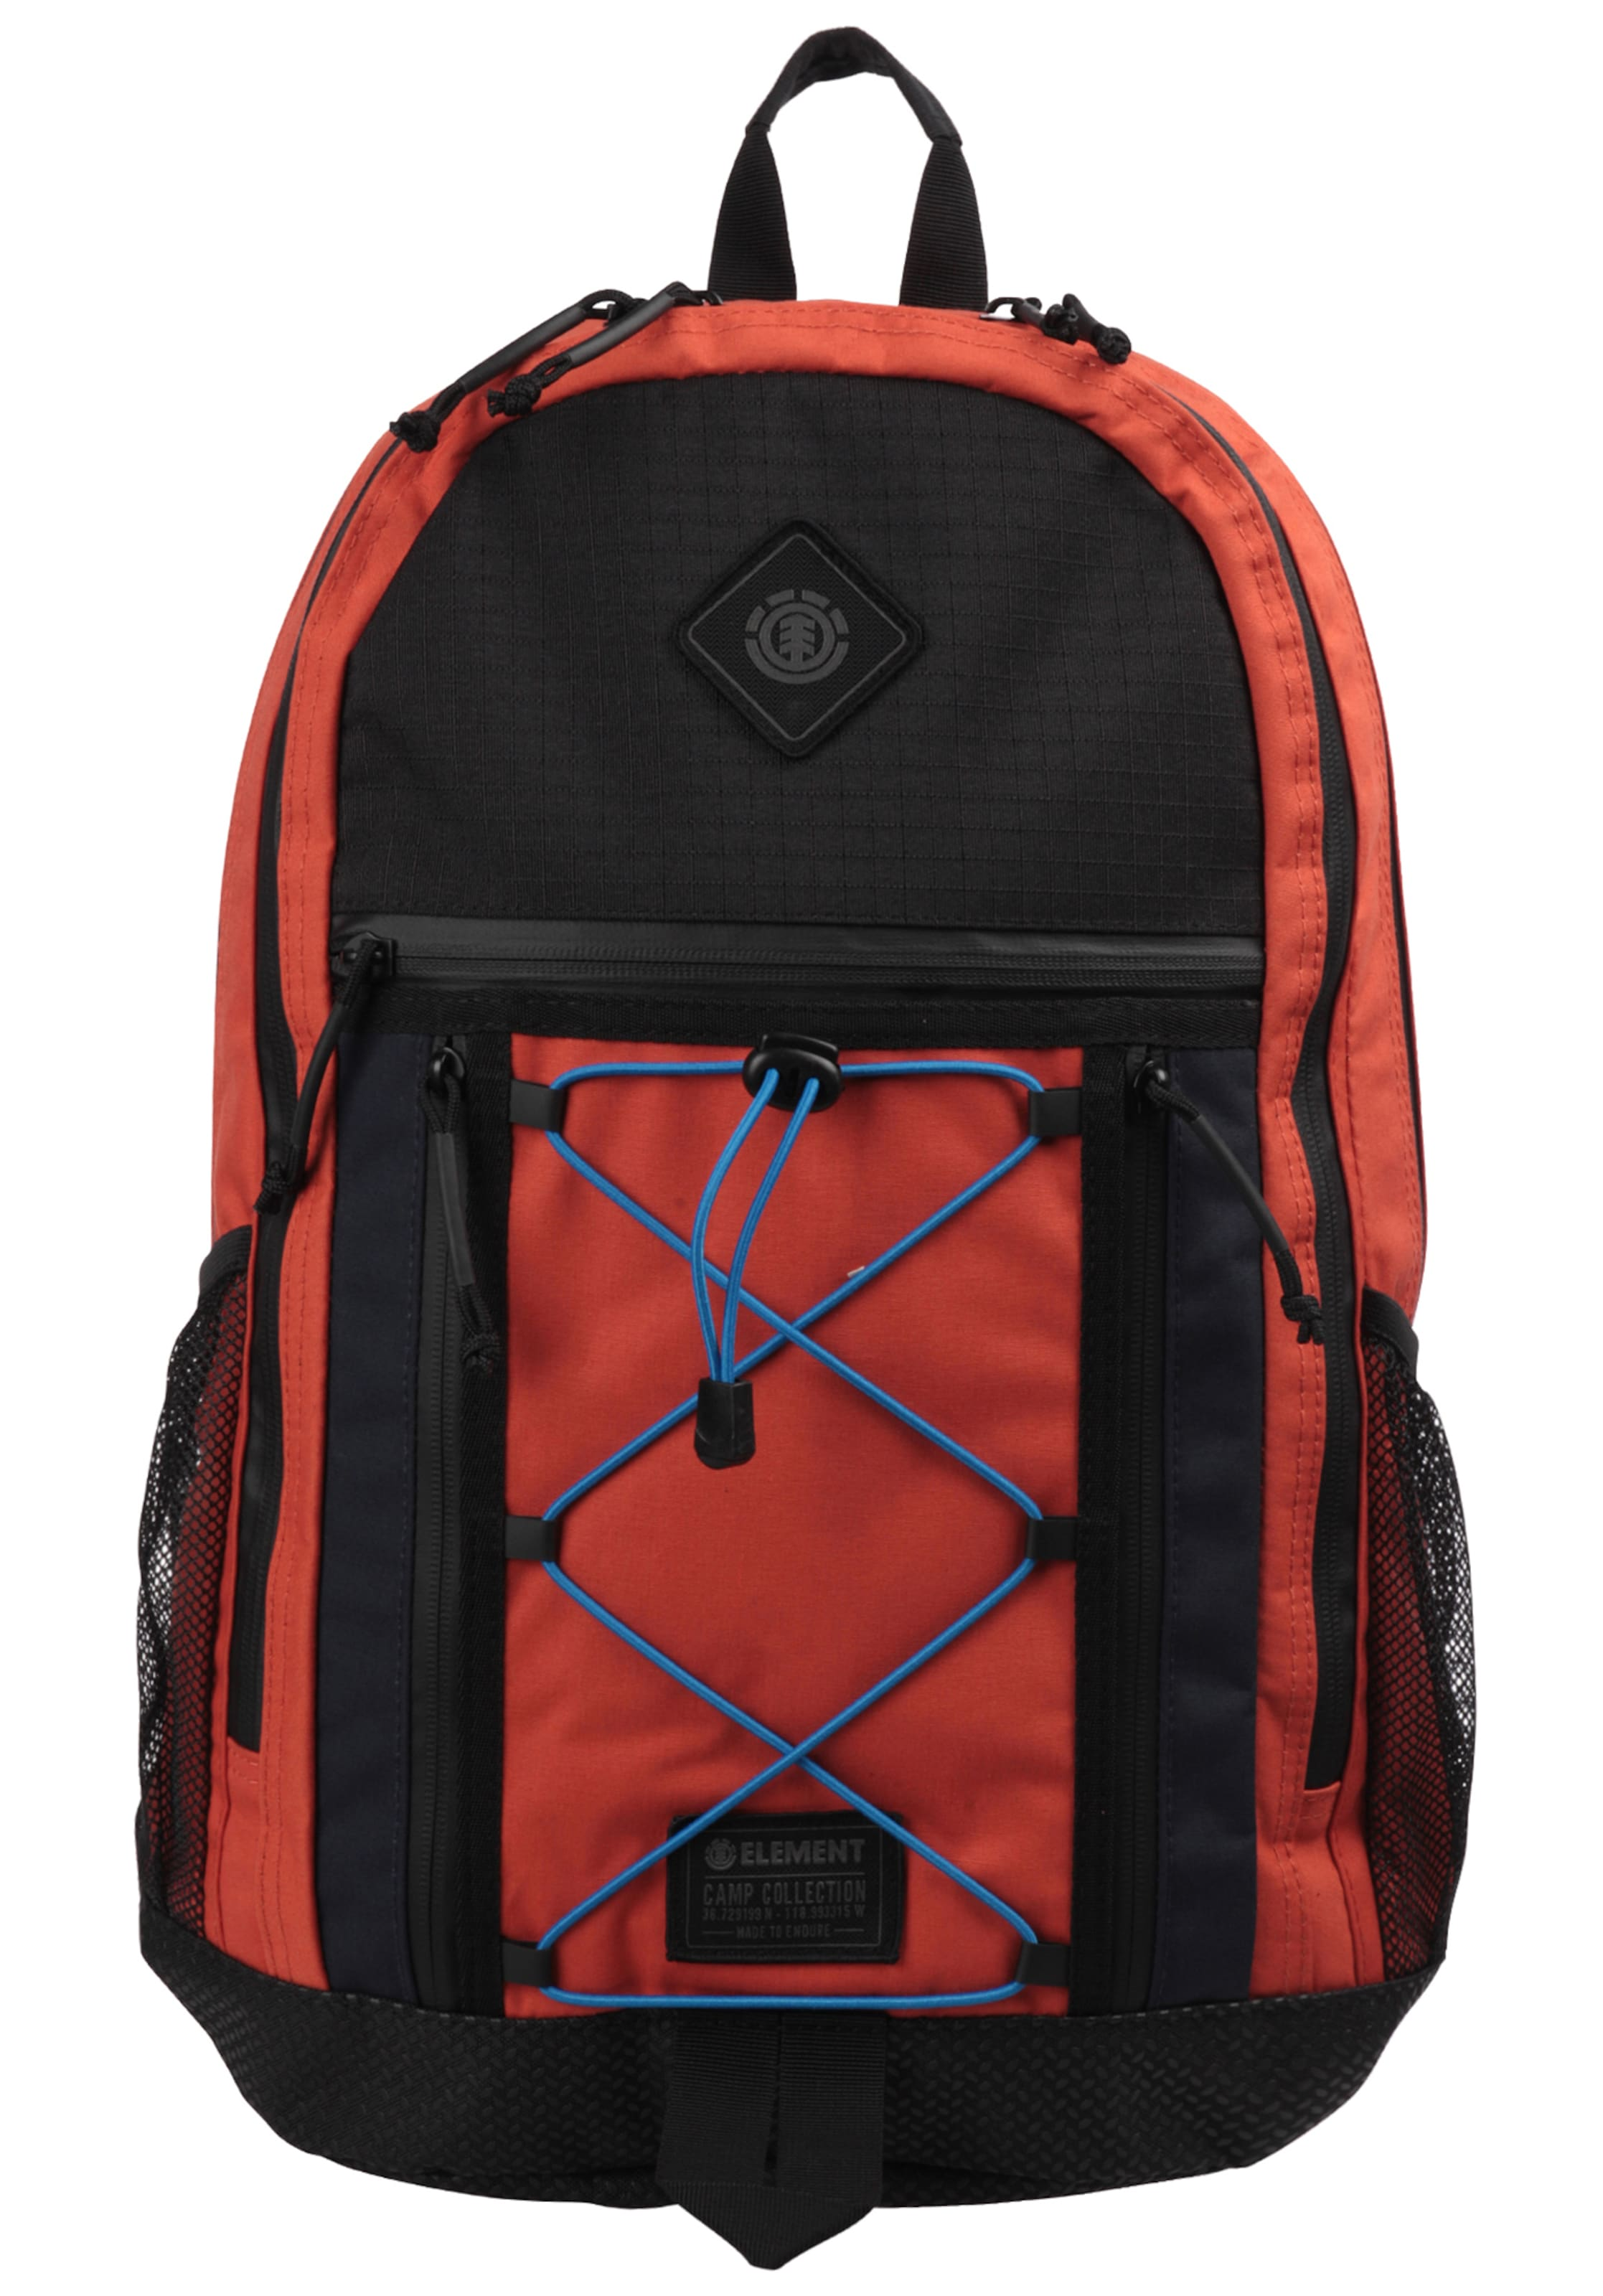 Outward' In OrangeSchwarz Cypress Rucksack' Element shCxdtrQ